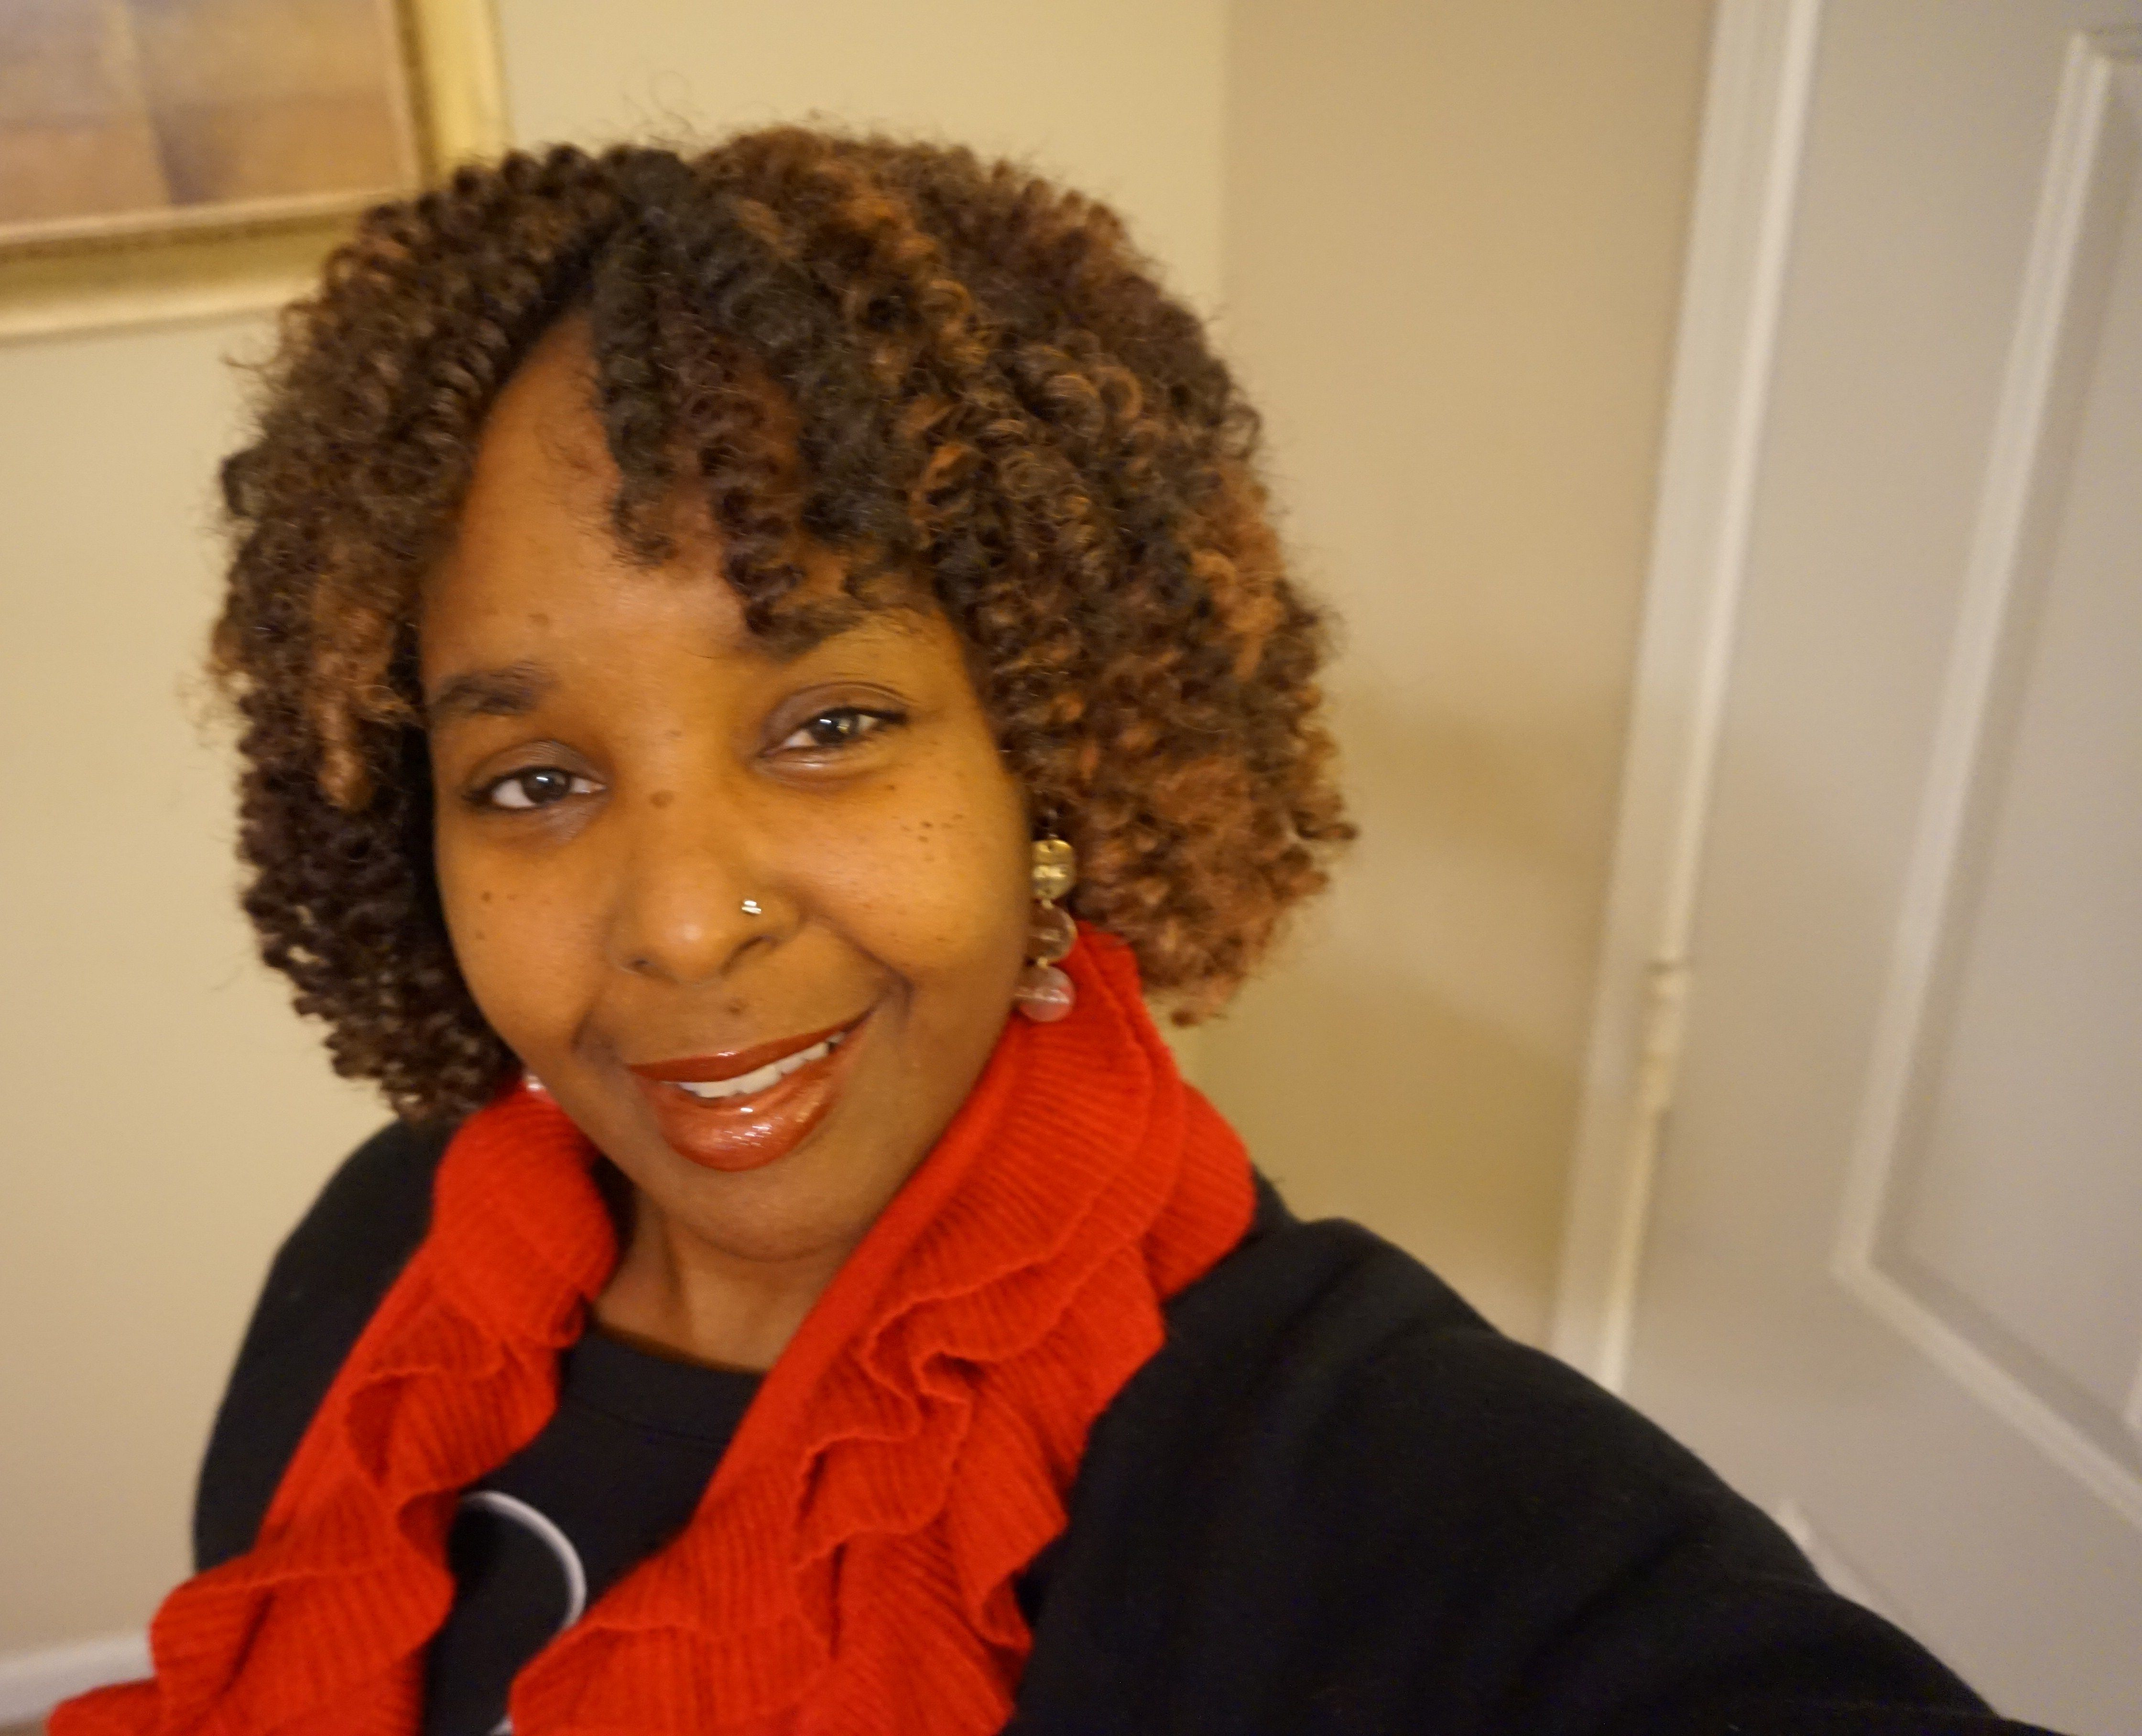 My Crochet Wig Is Done I Used Femi Marley Hair Color I Used